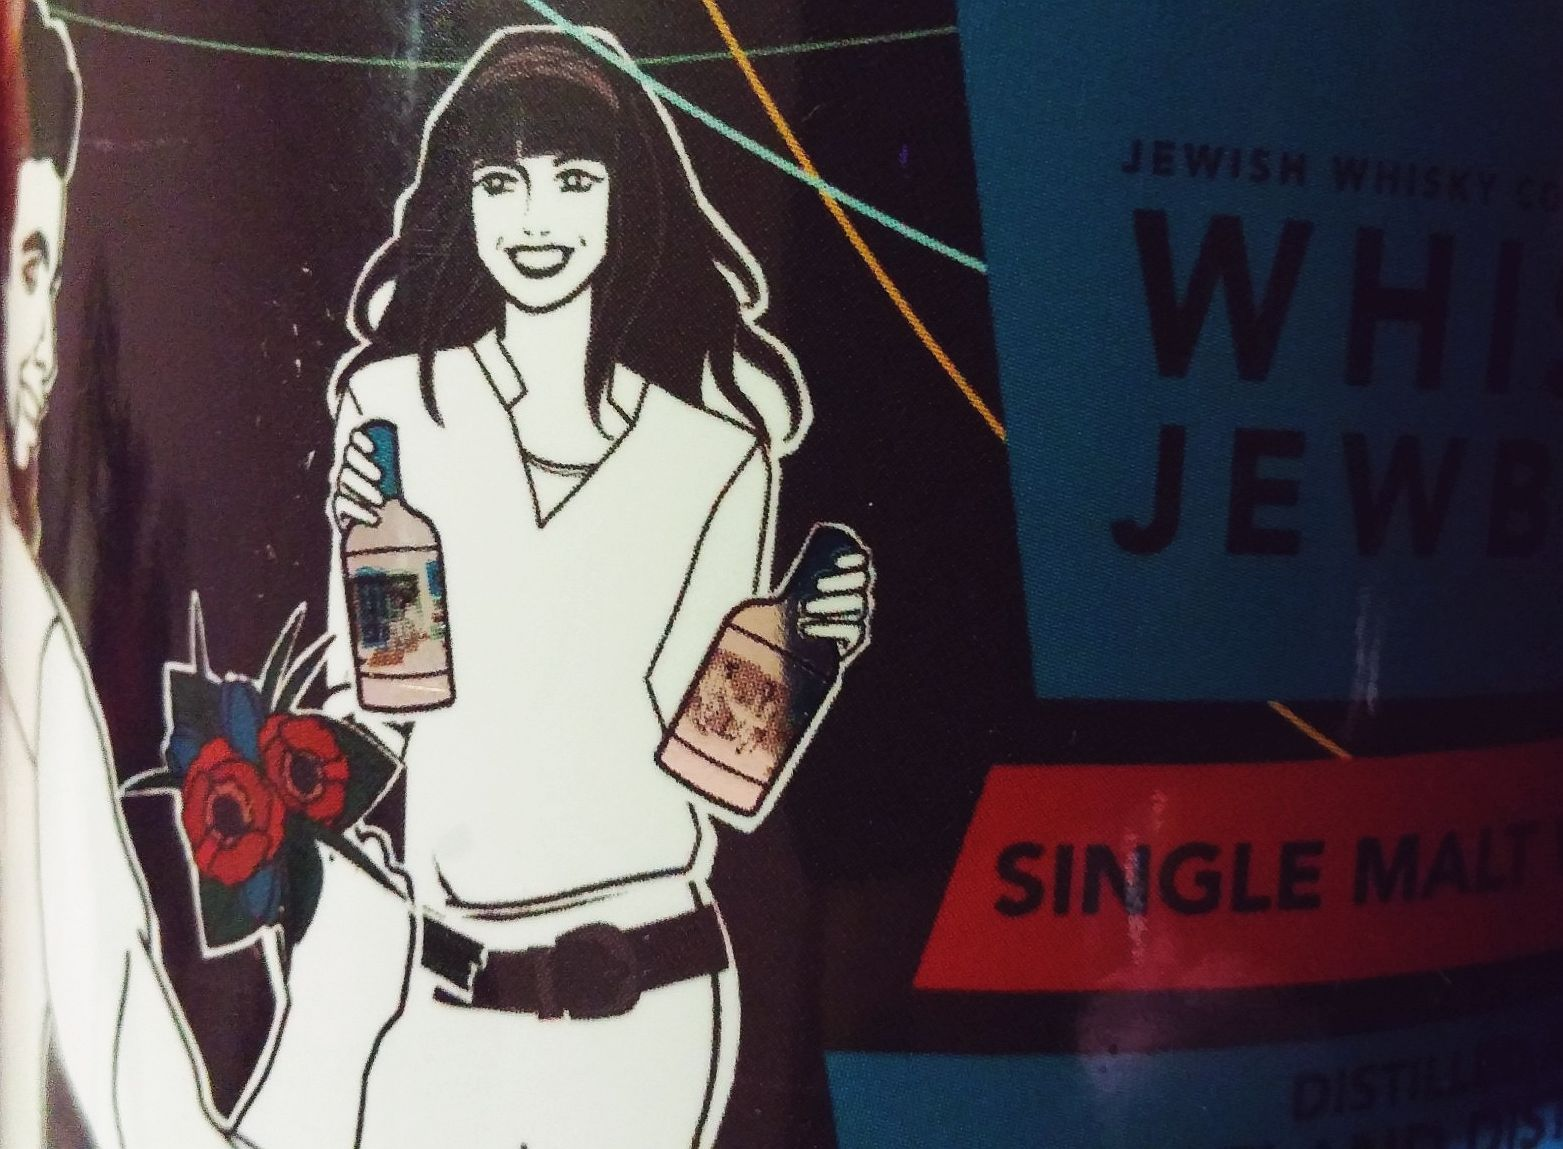 lee jewish singles Looking for a jewish man or woman would you like to meet jewish singles have you considered free jewish dating we can direct you to find the perfect jewish single match, meeting jewish singles.